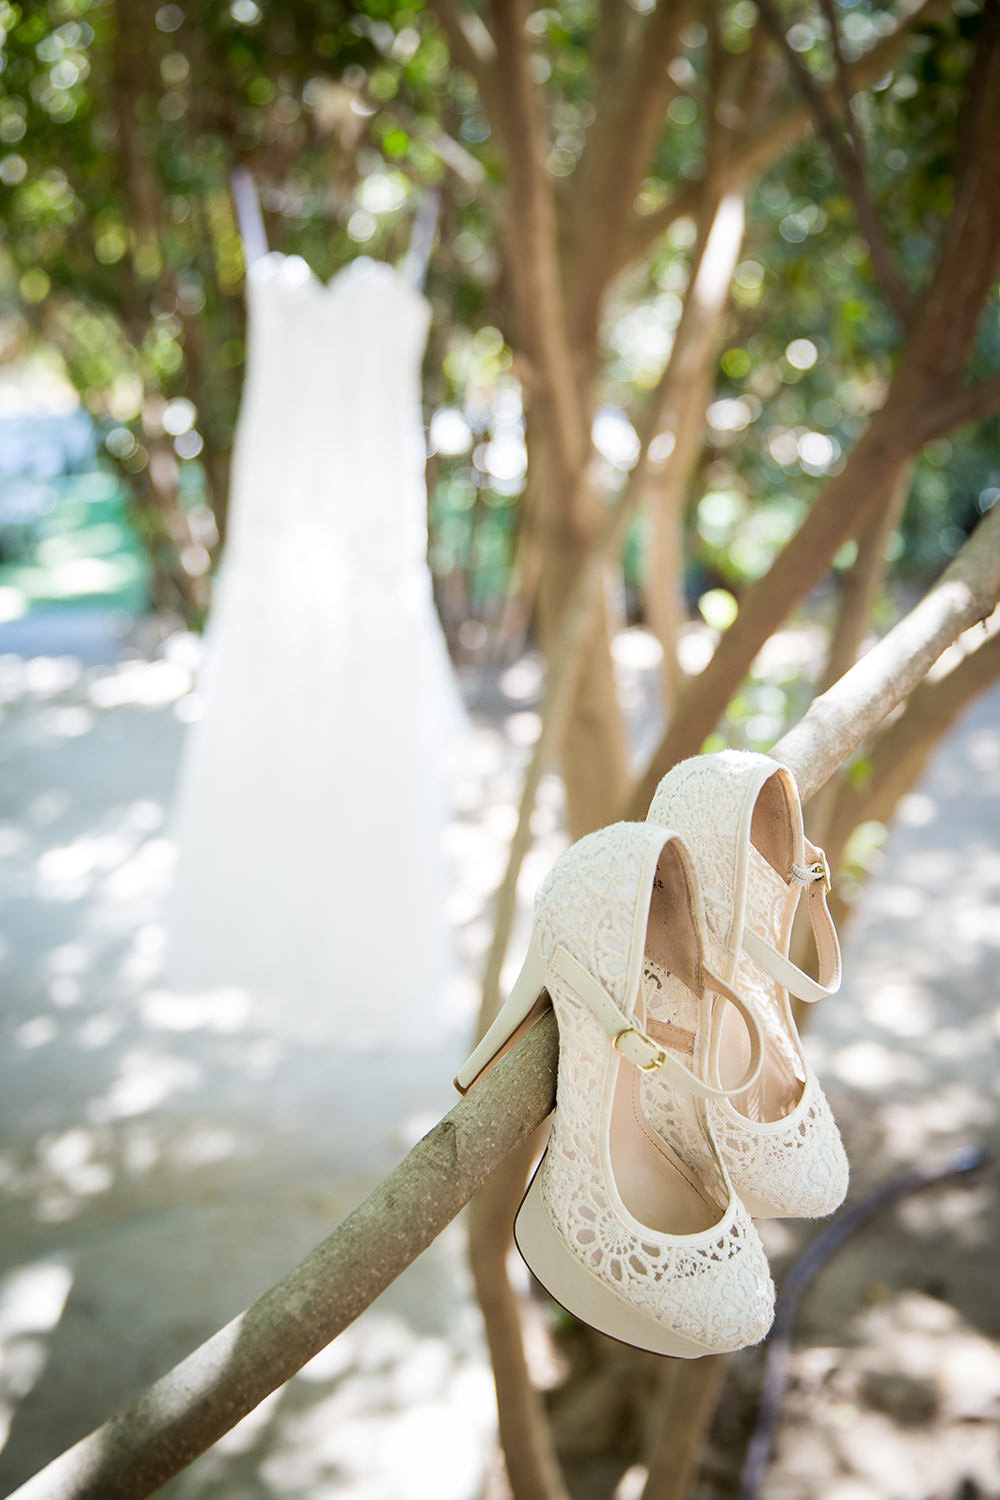 bridal shoes hanging in tree